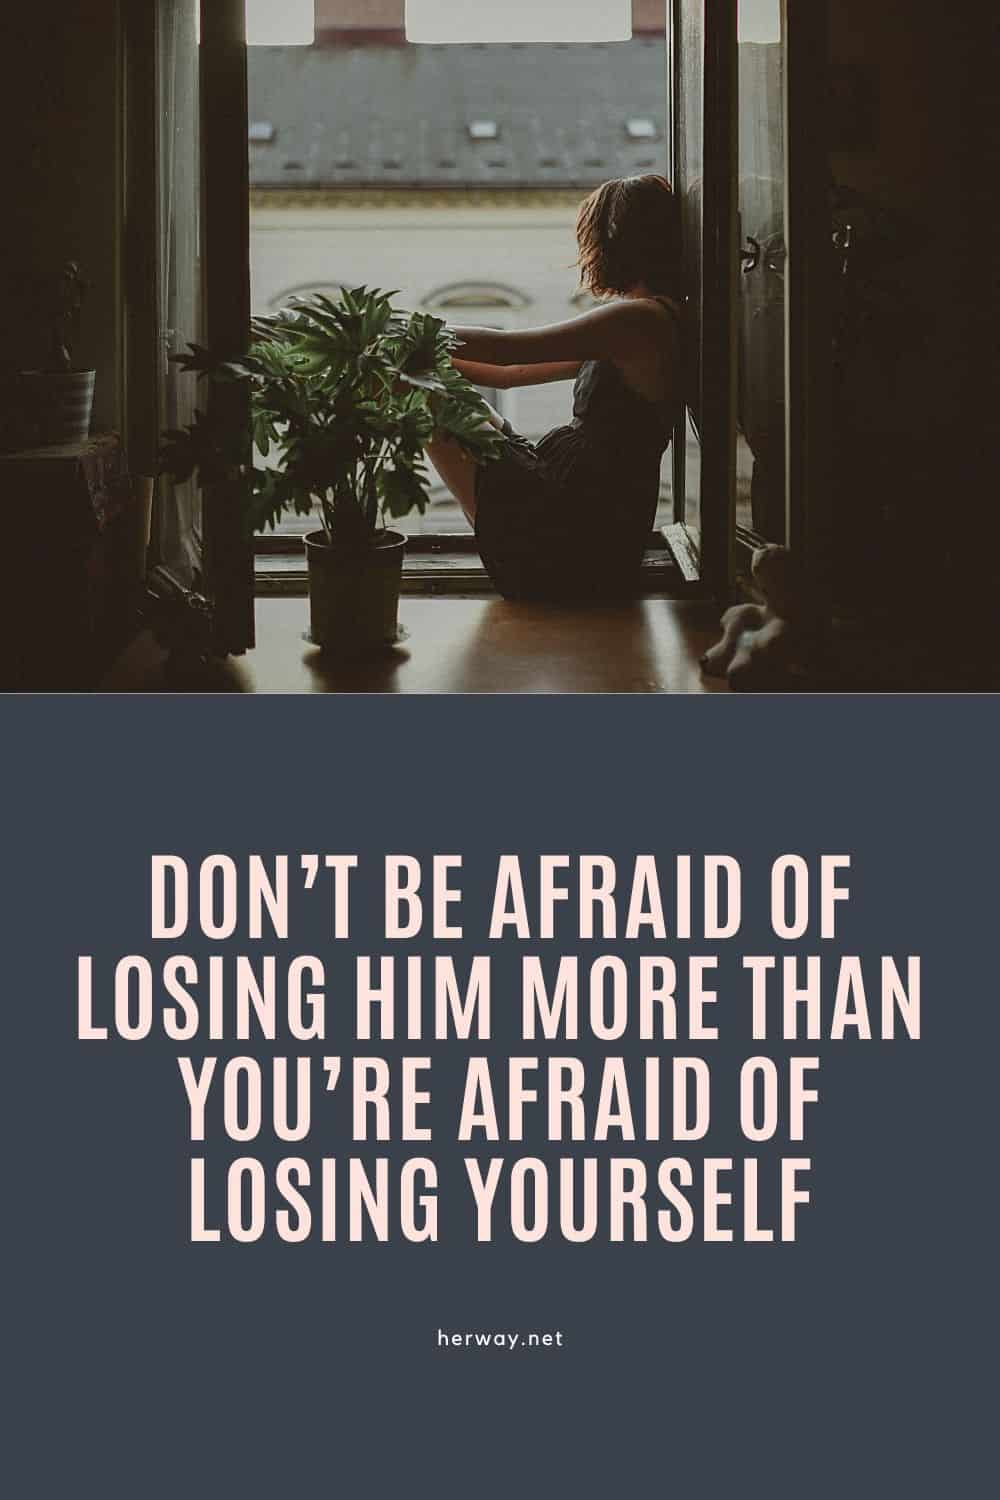 Don't Be Afraid Of Losing Him More Than You're Afraid Of Losing Yourself